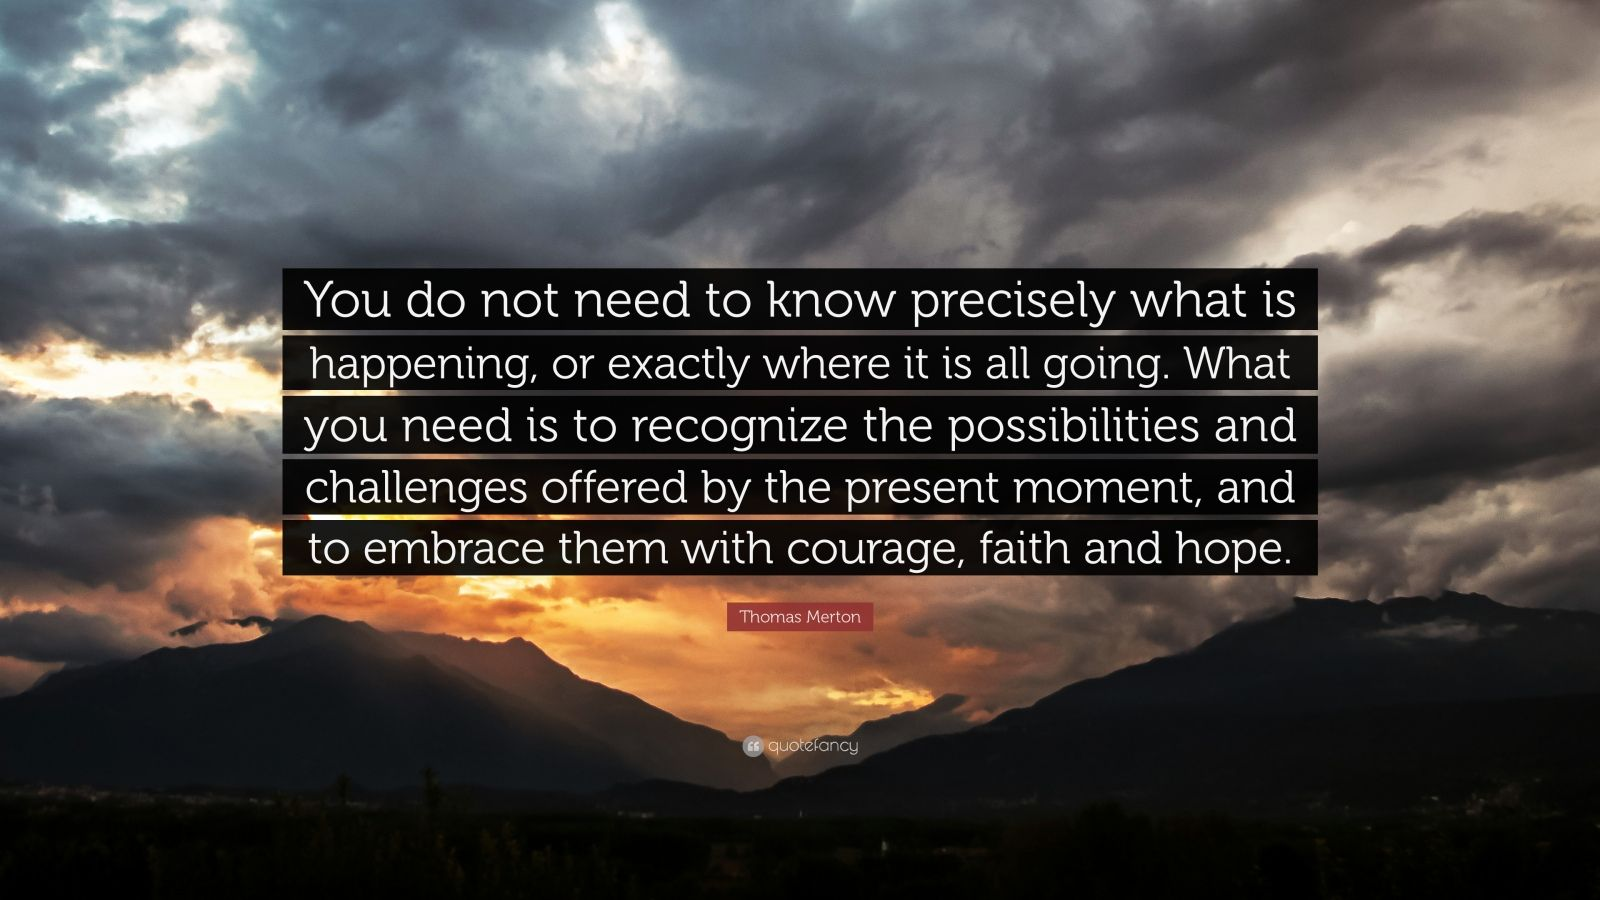 """Thomas Merton Quote: """"You do not need to know precisely what is happening, or exactly where it is all going. What you need is to recognize the possibilities and challenges offered by the present moment, and to embrace them with courage, faith and hope."""""""